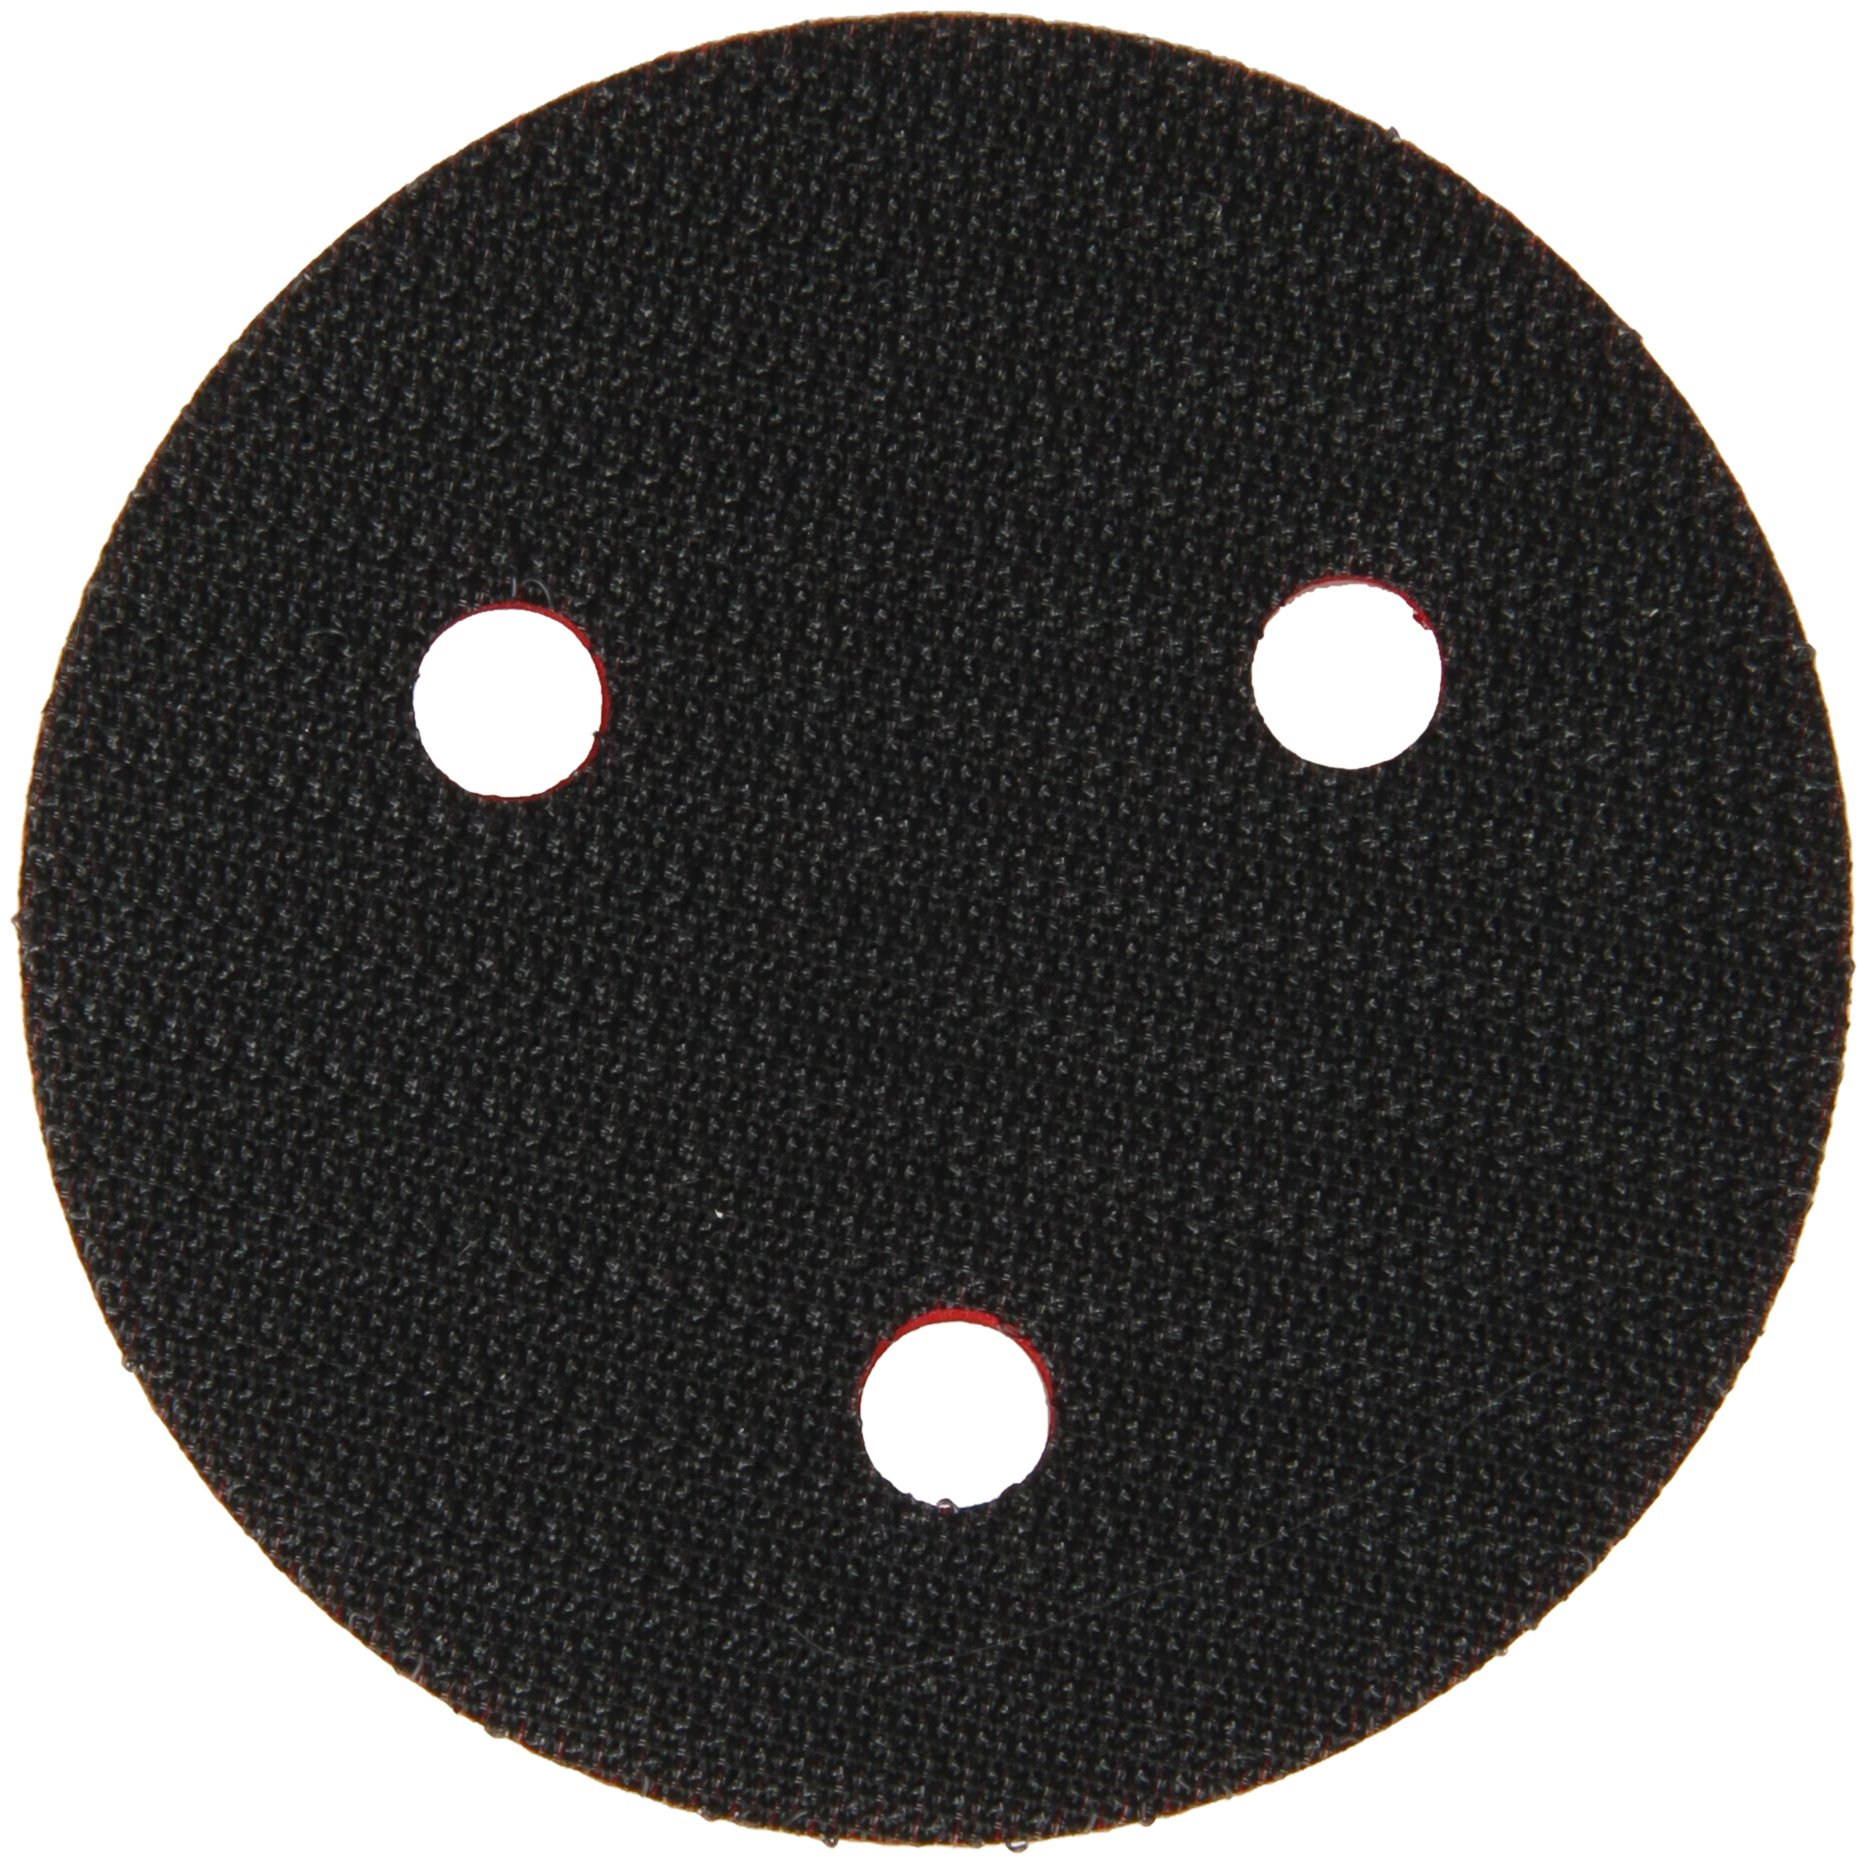 """3M(TM) Hookit(TM) Clean Sanding Low Profile Disc Pad 20350, Hook and Loop Attachment, 3"""" Diameter x 1/2"""" Thick, 1/4""""-20 External Thread, 3 Holes, Red (Pack of 1)"""